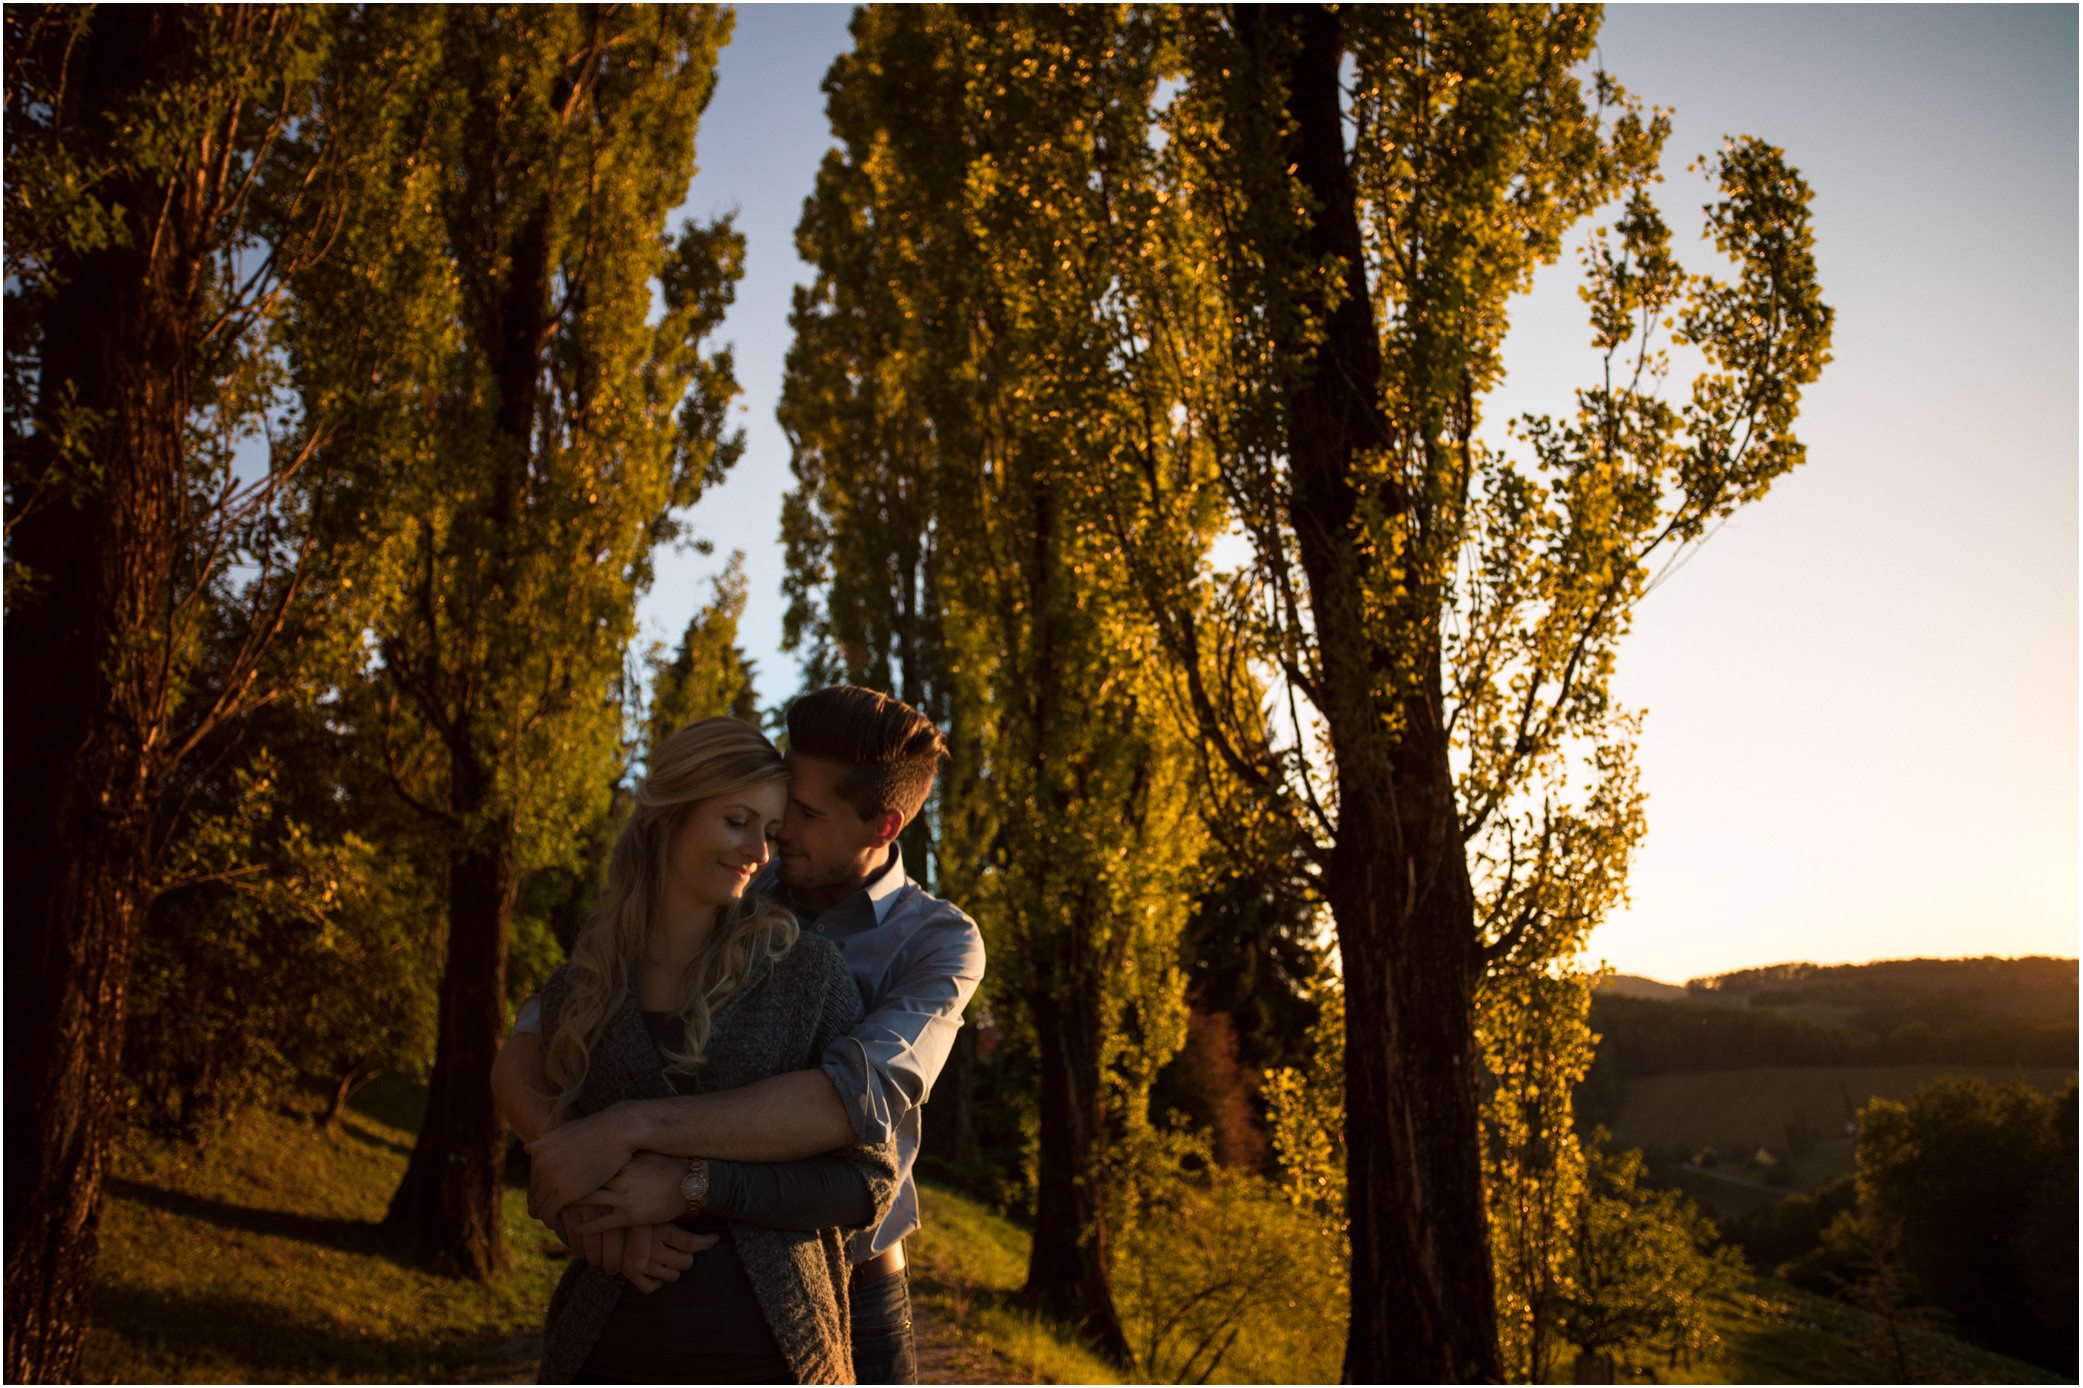 Engagement-Shooting-Suedsteiermark-11.jpg